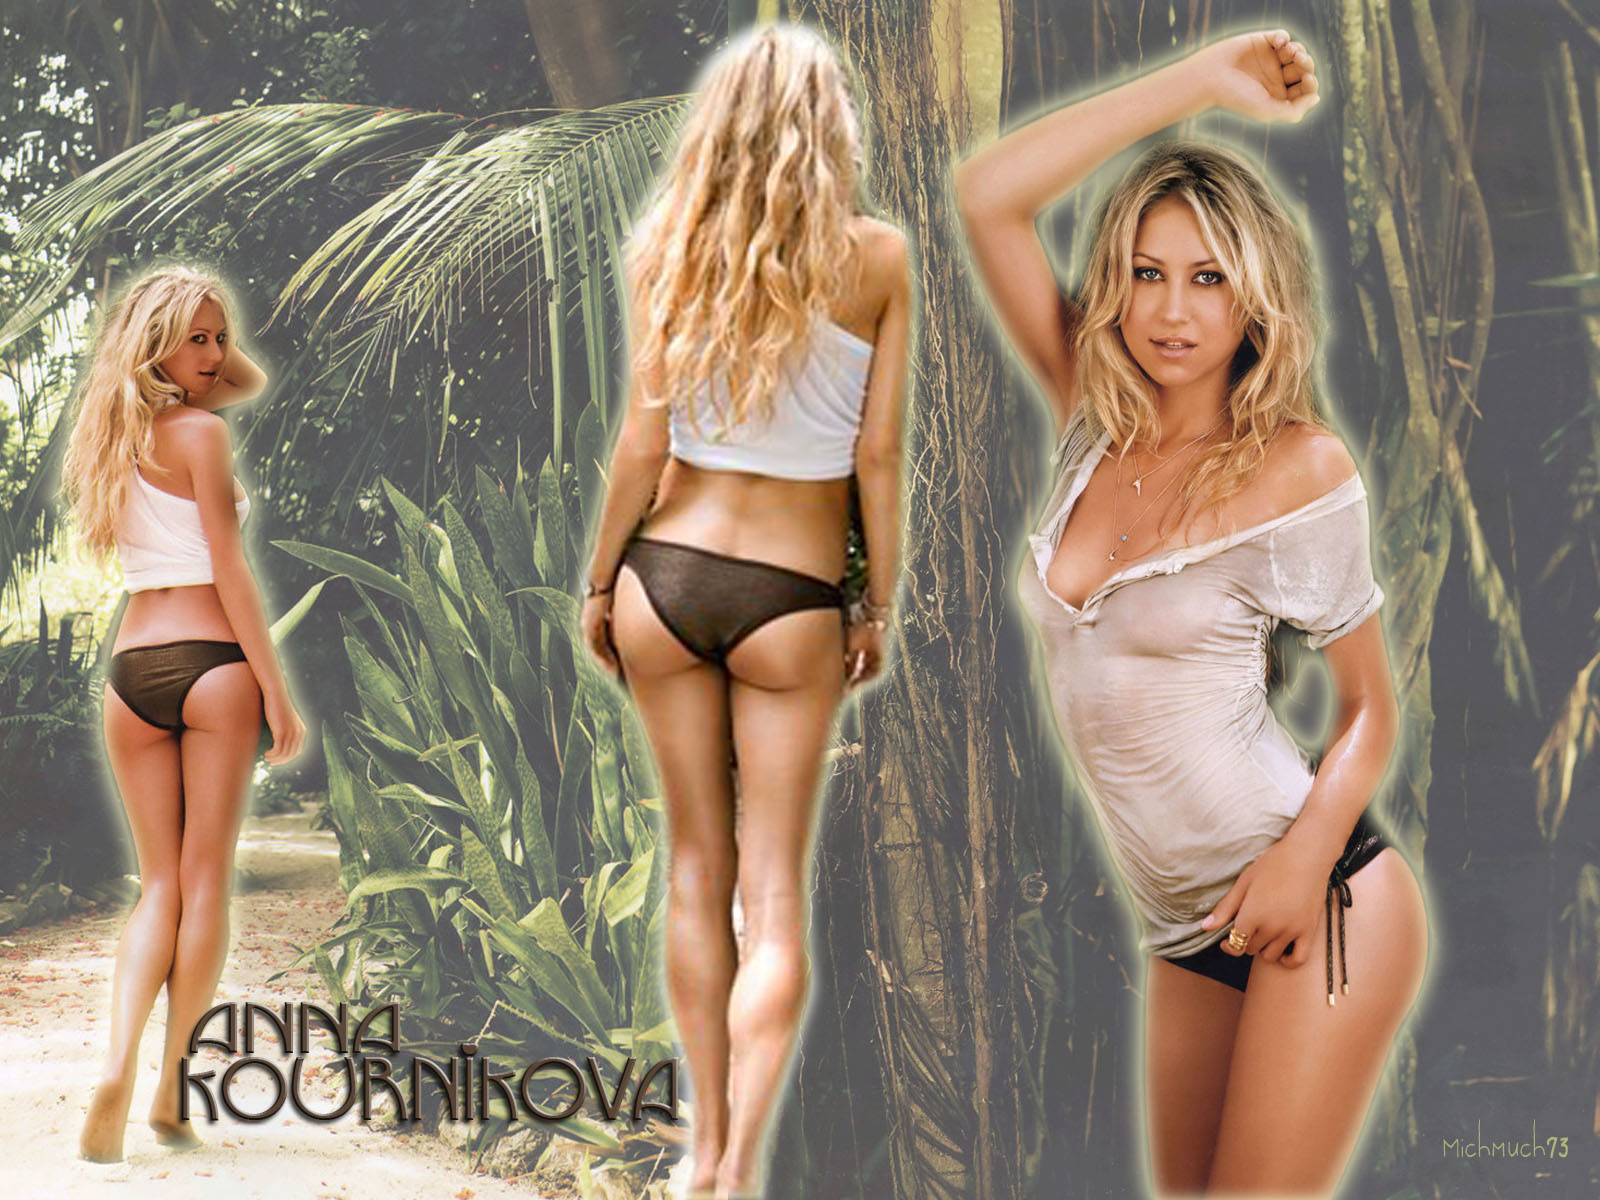 Anna Kournikova-wallpaperspicksimagesphotos.jpg - 365.79 KB